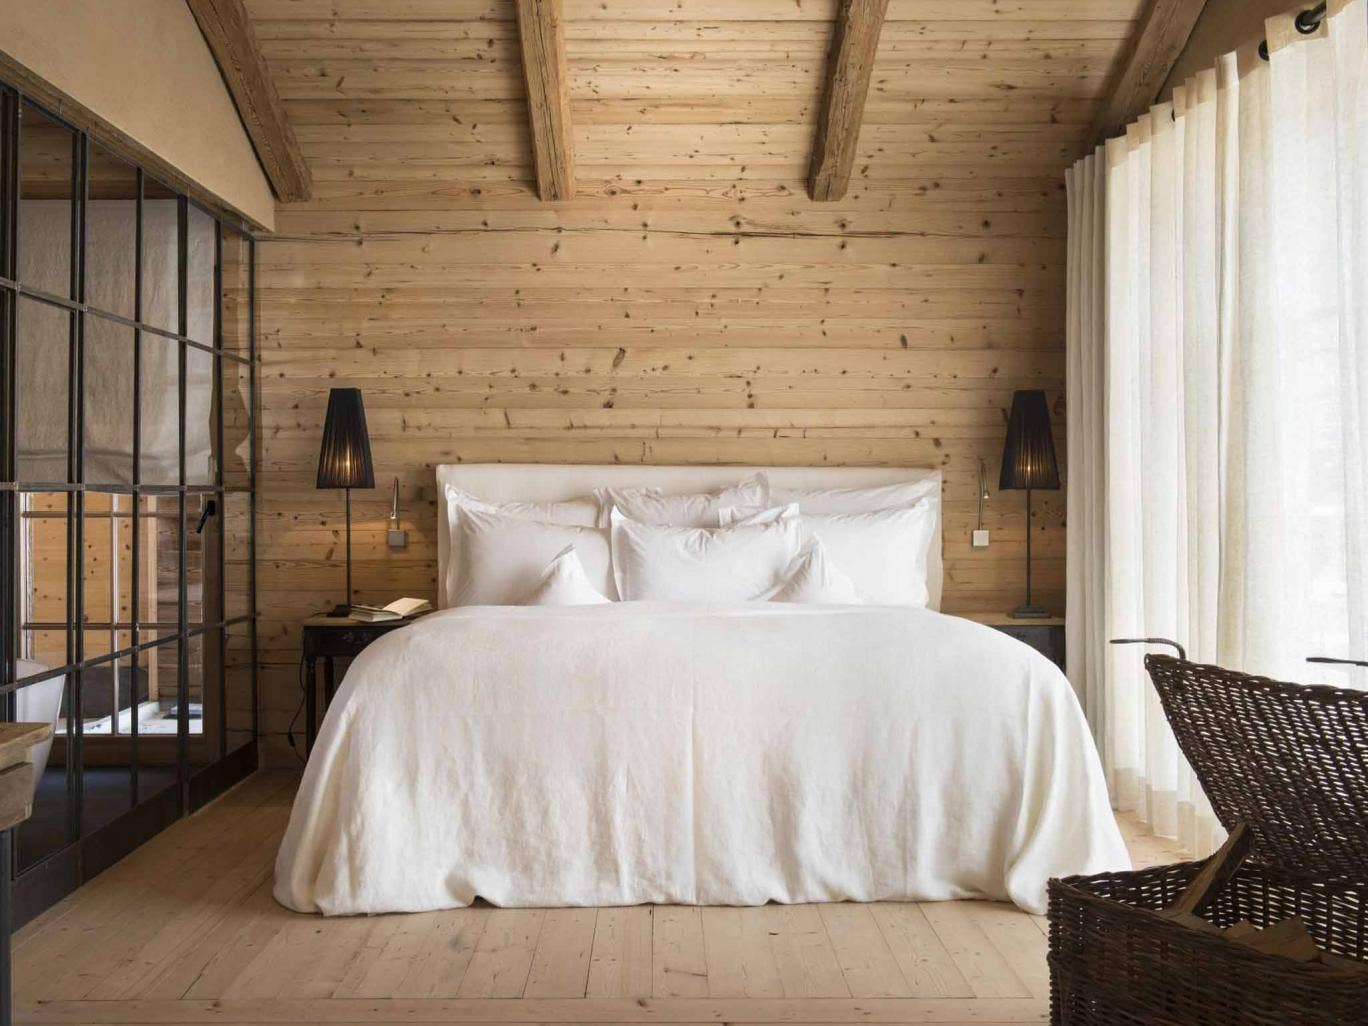 destinations with ekanem italian ski hotels tree houses floor to ceiling windows and hearty food. Black Bedroom Furniture Sets. Home Design Ideas